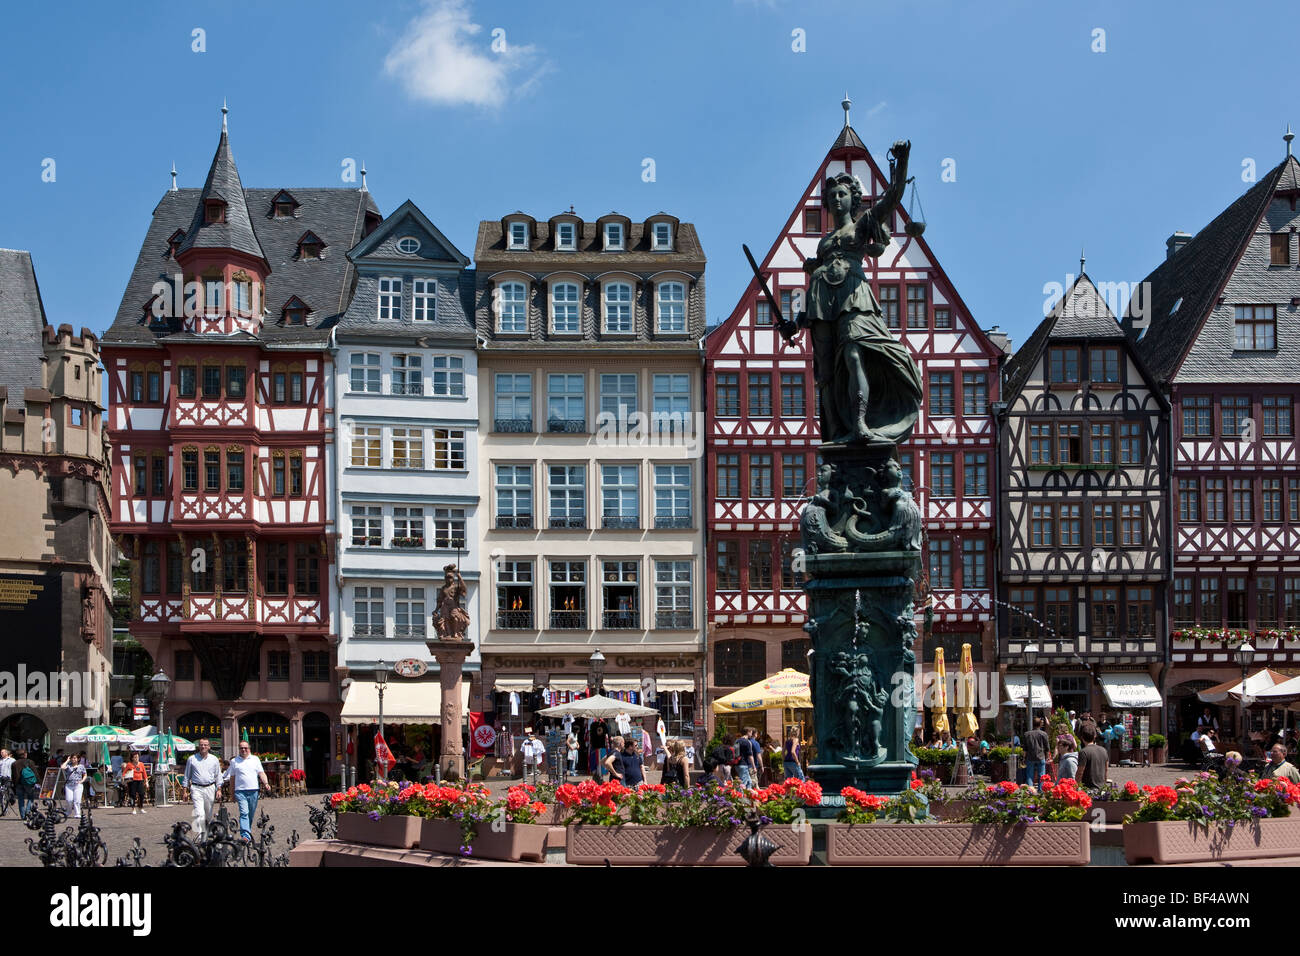 Statue of Justice holding a scale in her hand on the Roemer, City Hall Square, Frankfurt am Main, Hesse, Germany, - Stock Image